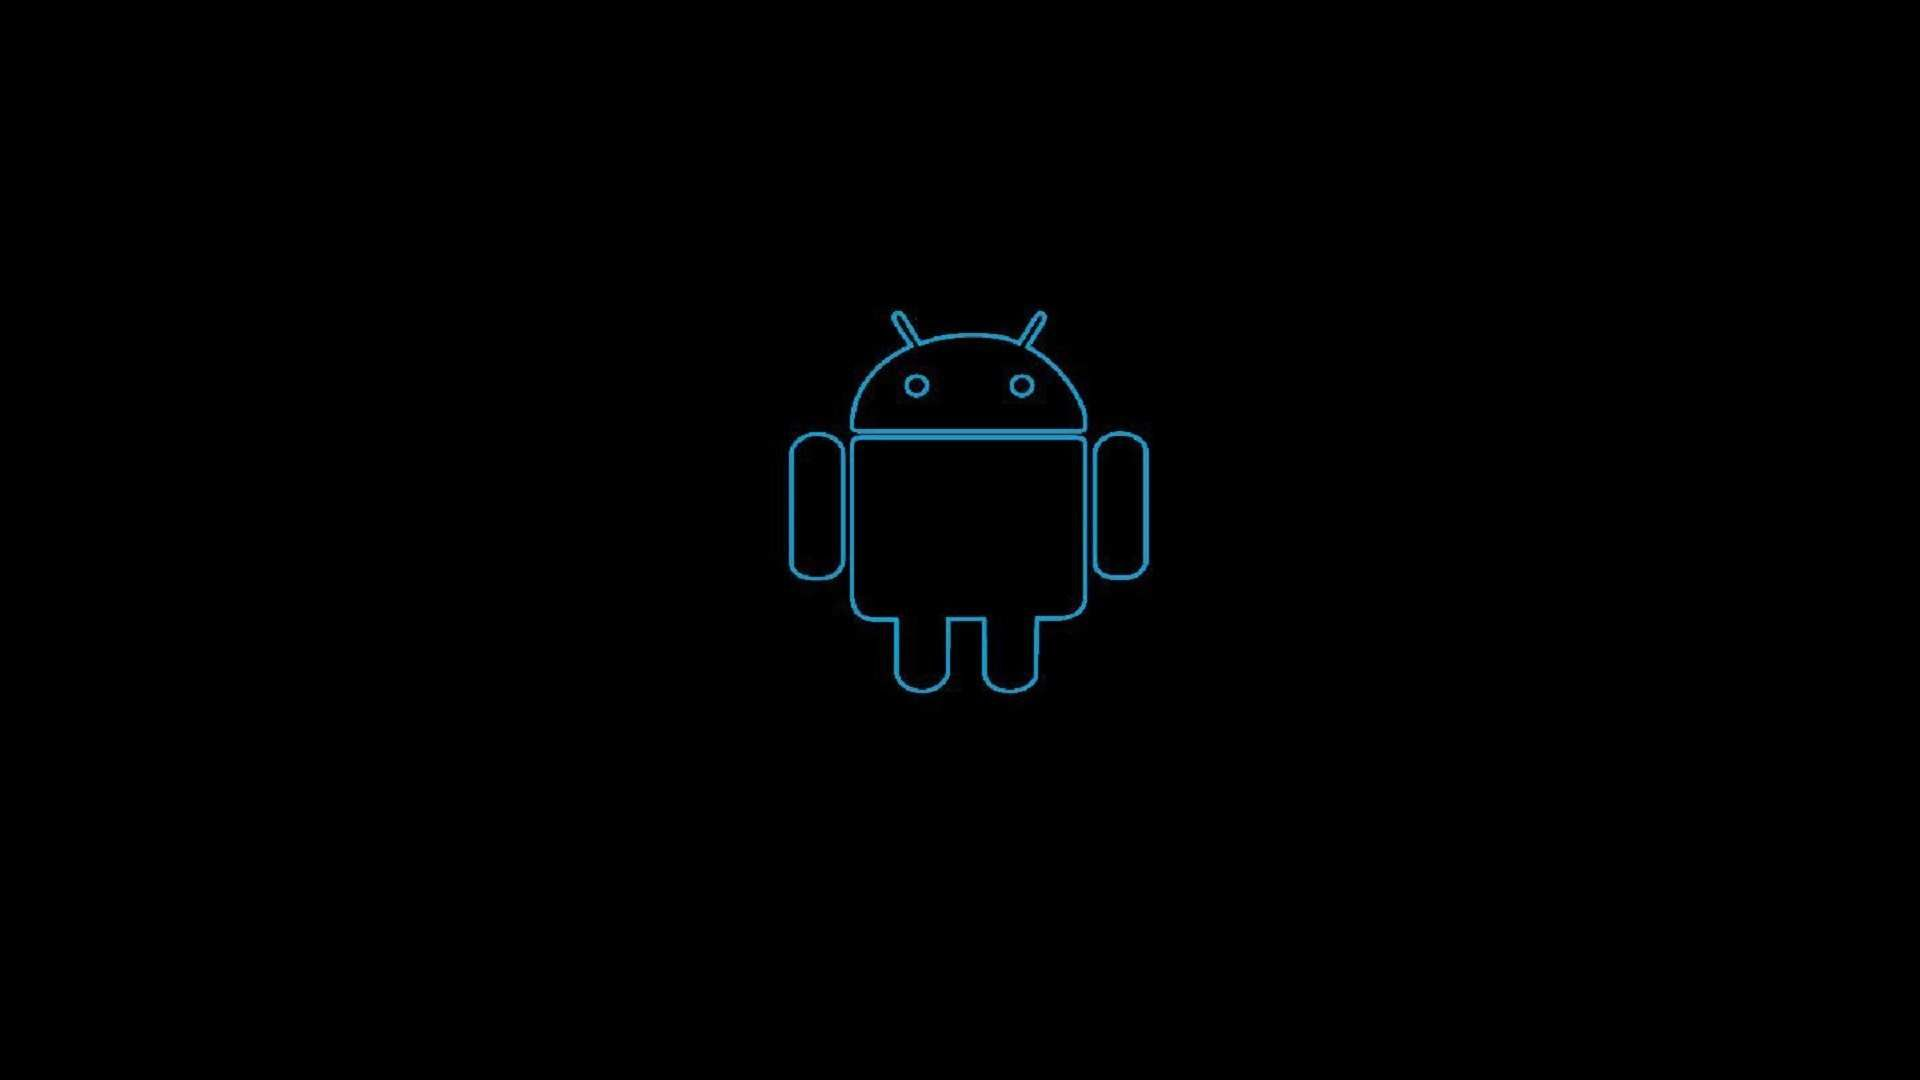 Android Logo On A Black Background